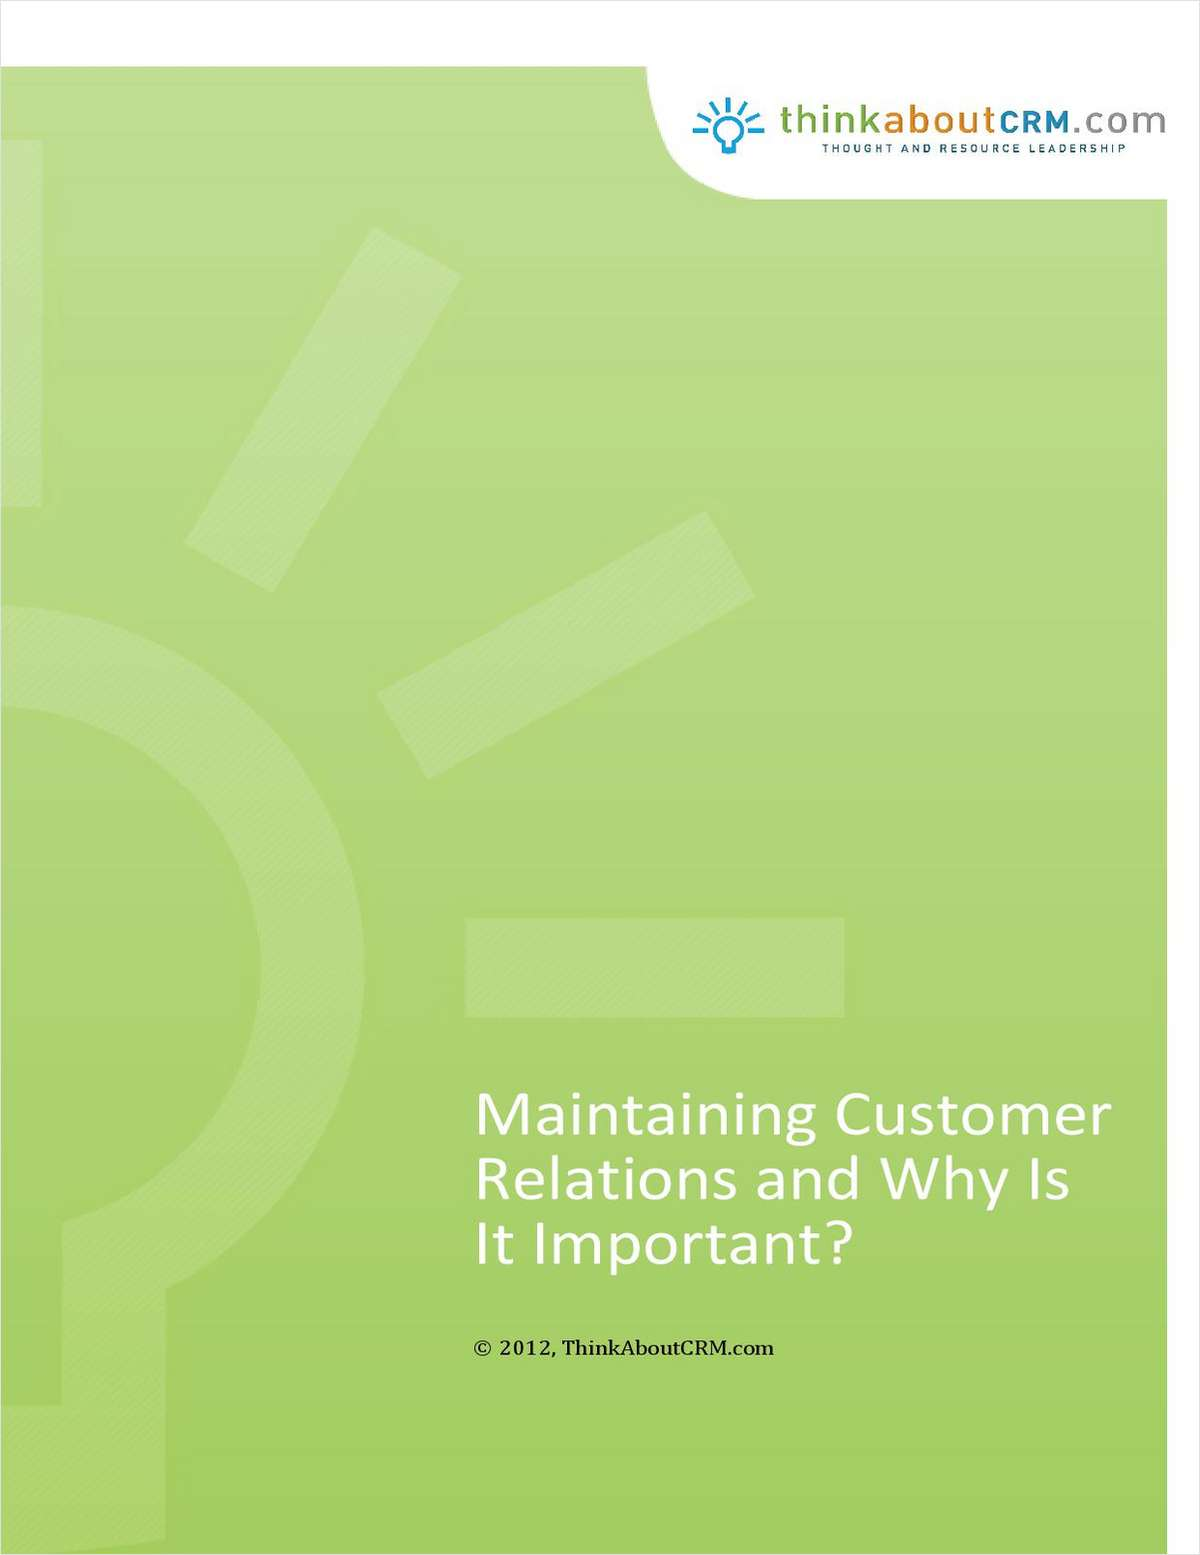 Maintaining Customer Relations and Why Is It Important? - Free 46 page eBook